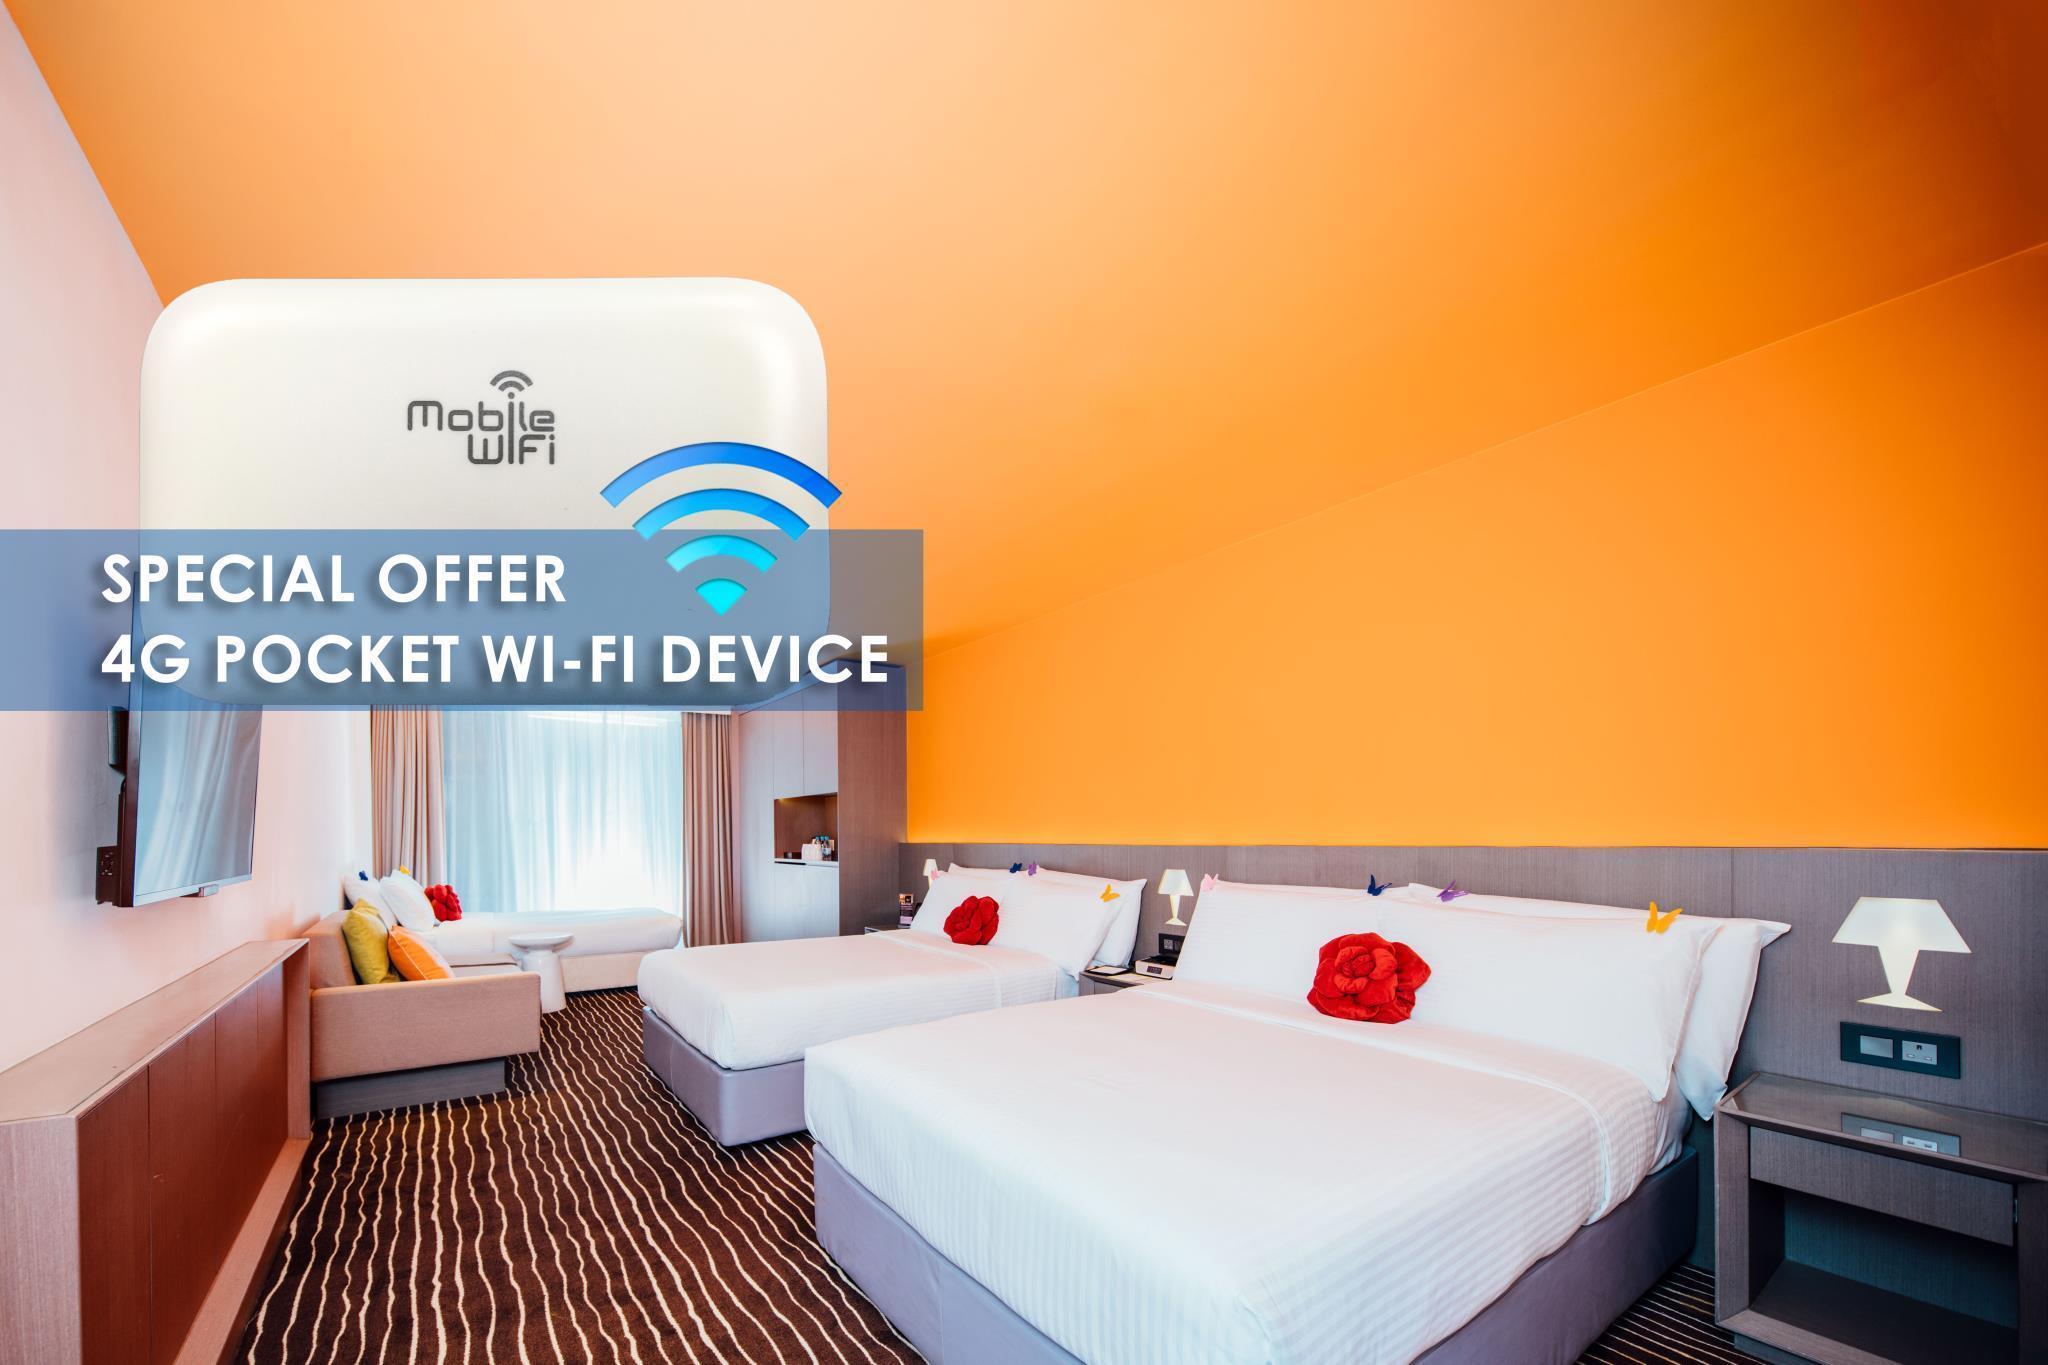 Družinska soba s 4g Wi-Fi žepno napravo (Family Room with 4G Pocket Wi-Fi Device)